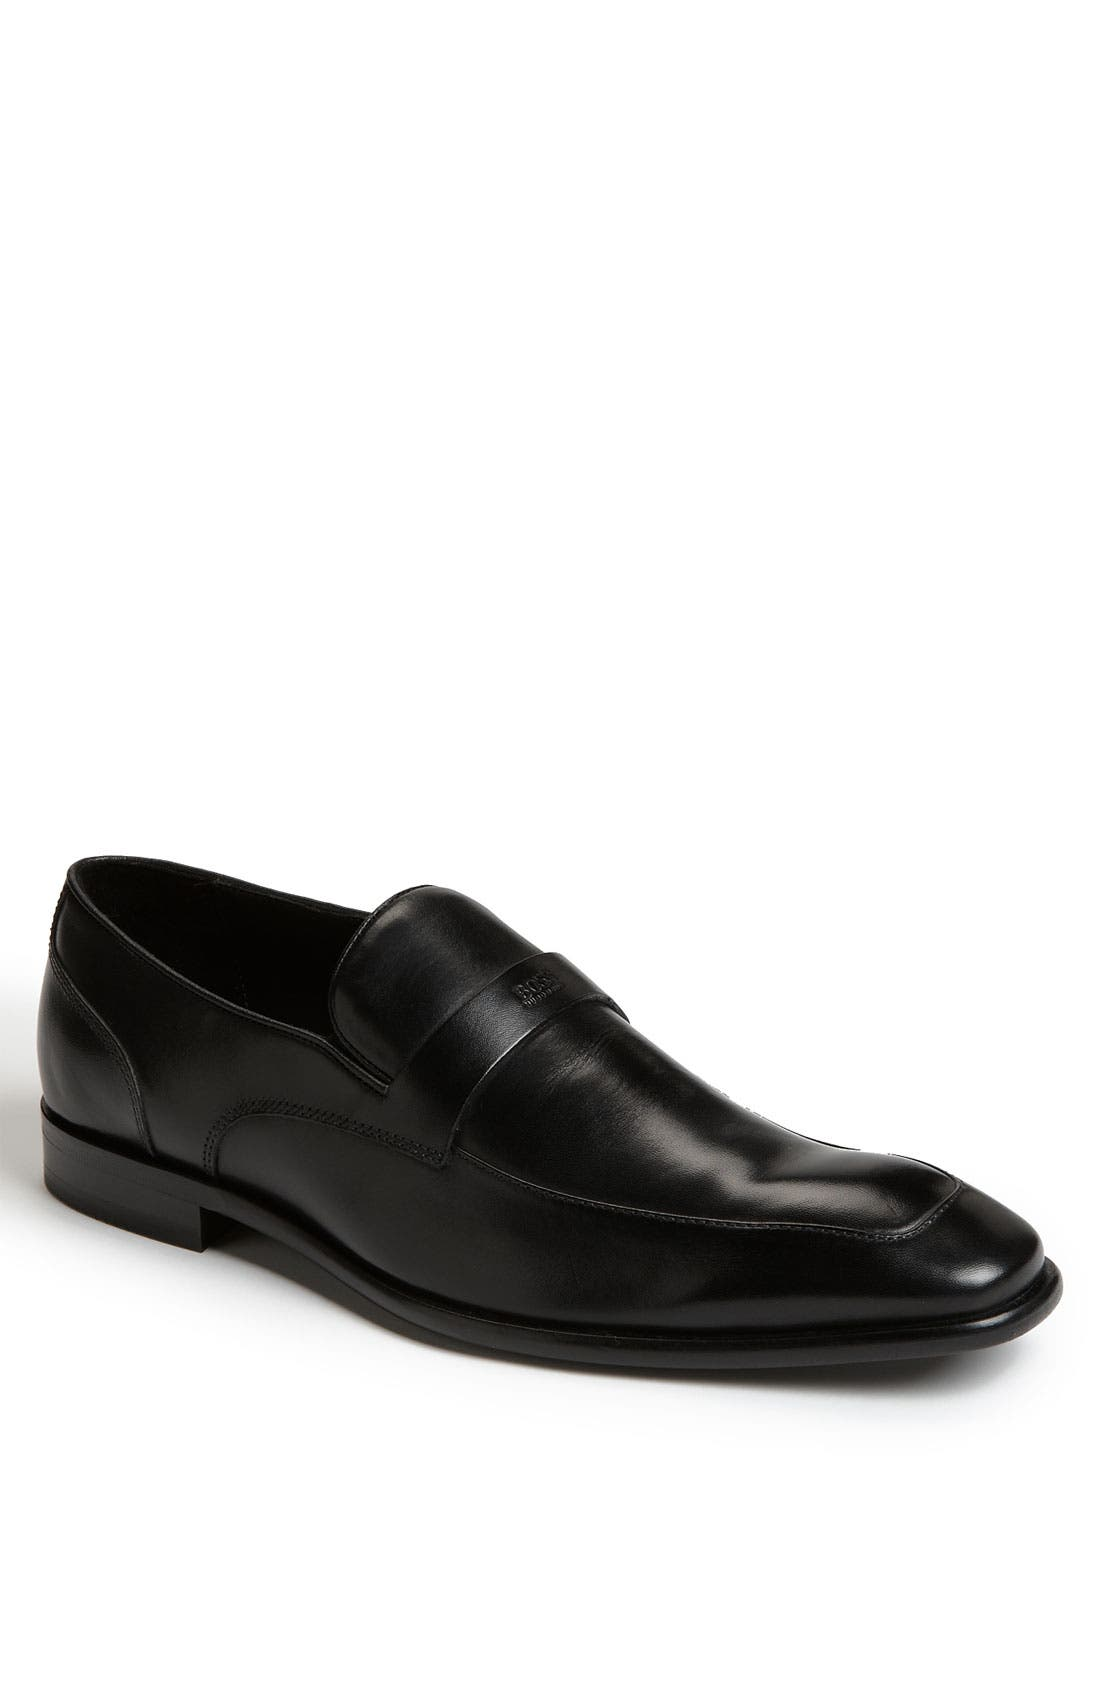 Main Image - BOSS HUGO BOSS 'Metero' Loafer (Men)